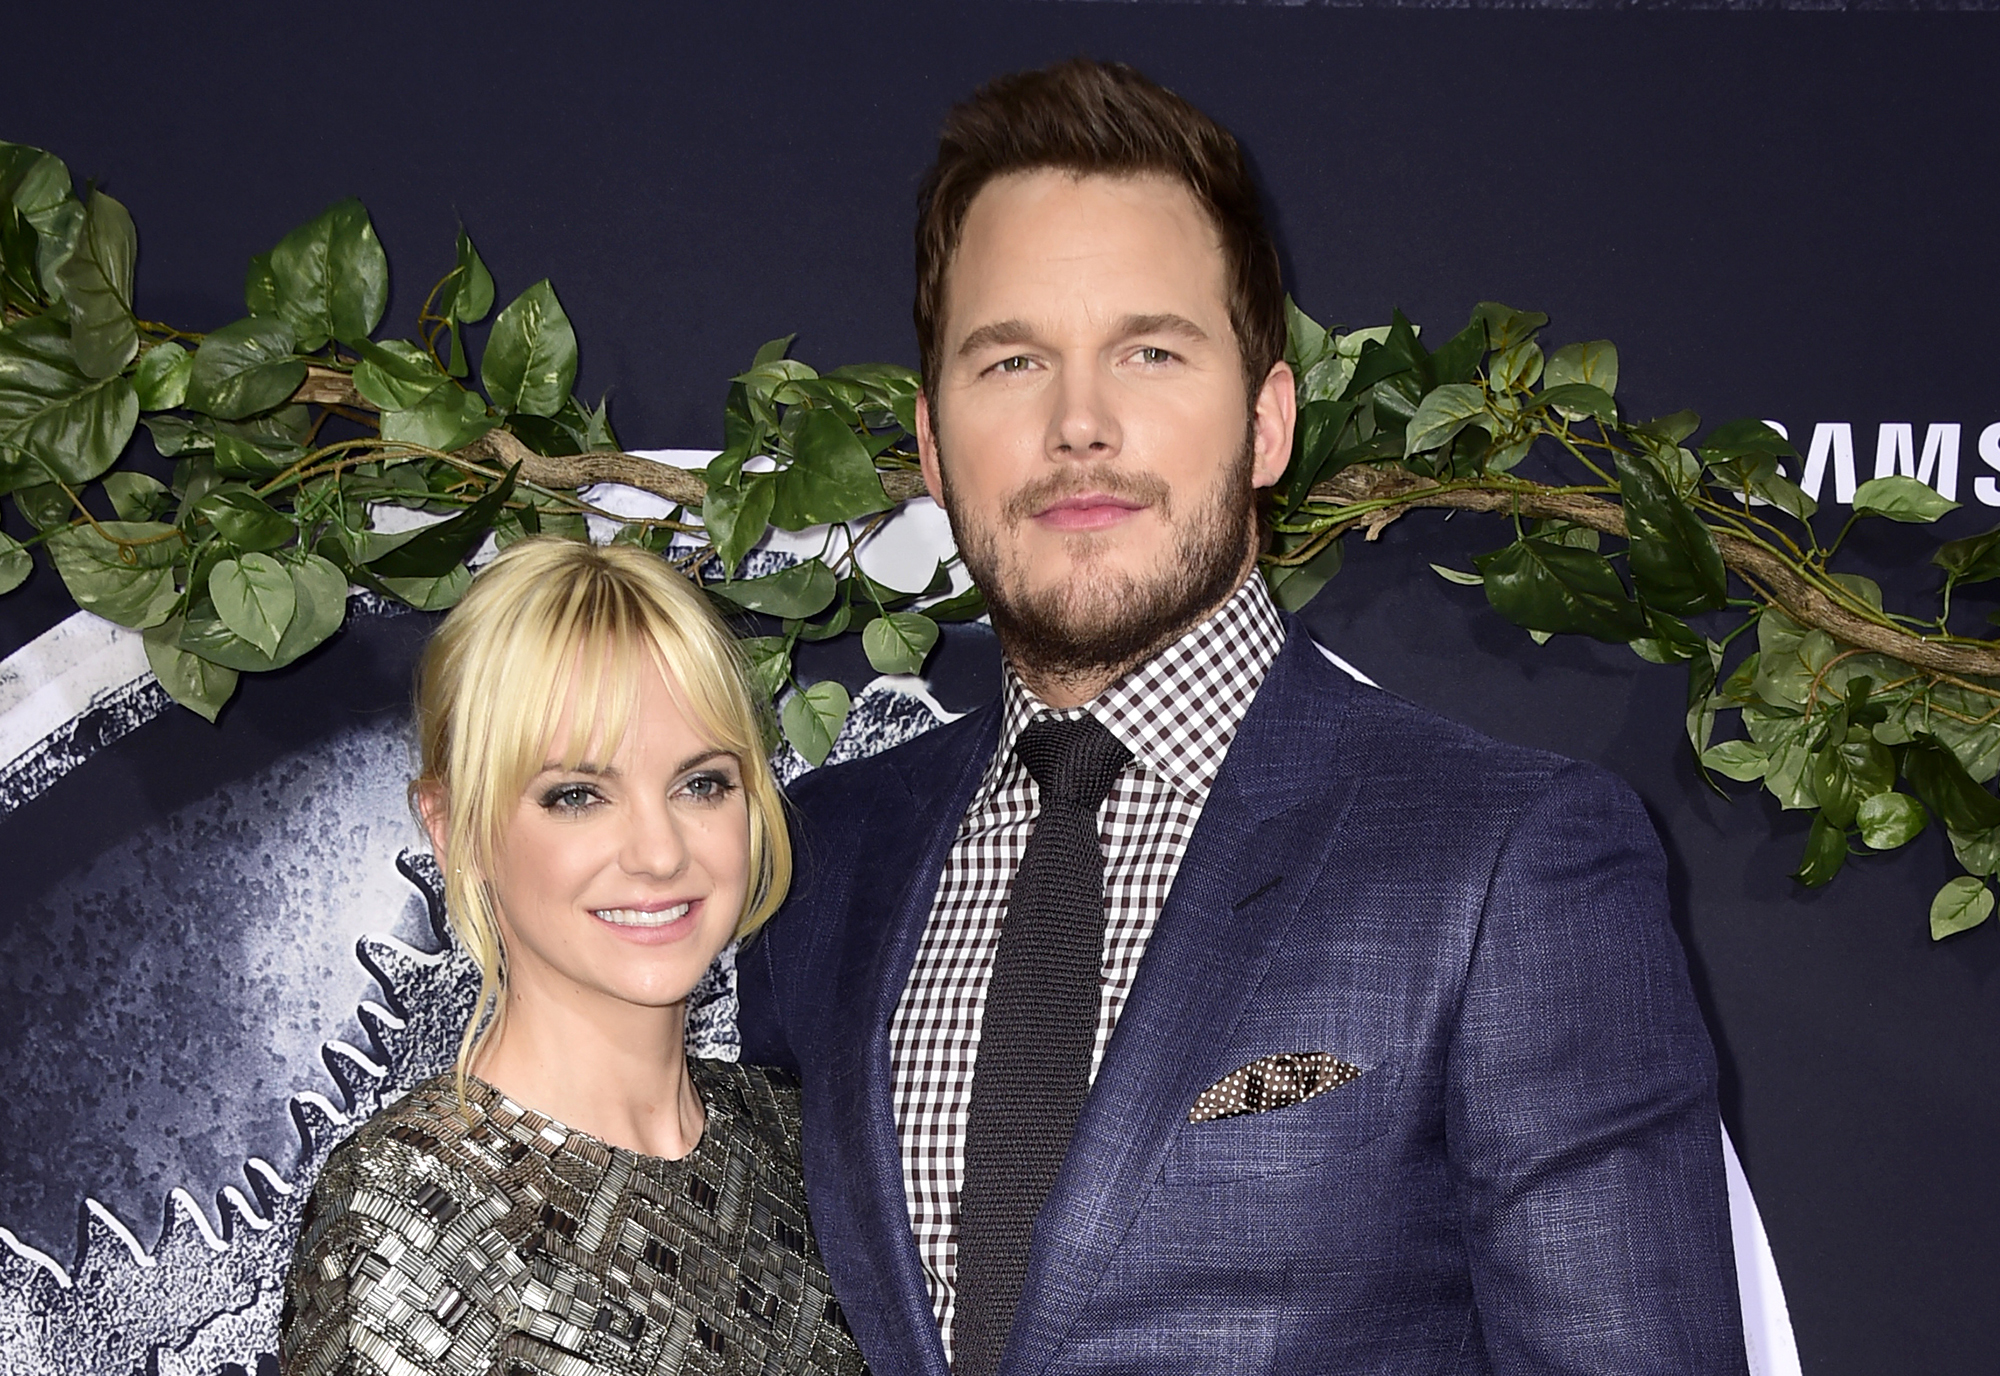 Anna Faris and Chris Pratt attend the Universal Pictures'  Jurassic World  premiere at Dolby Theatre on June 9, 2015 in Hollywood, California.  (Photo by Frazer Harrison/Getty Images)